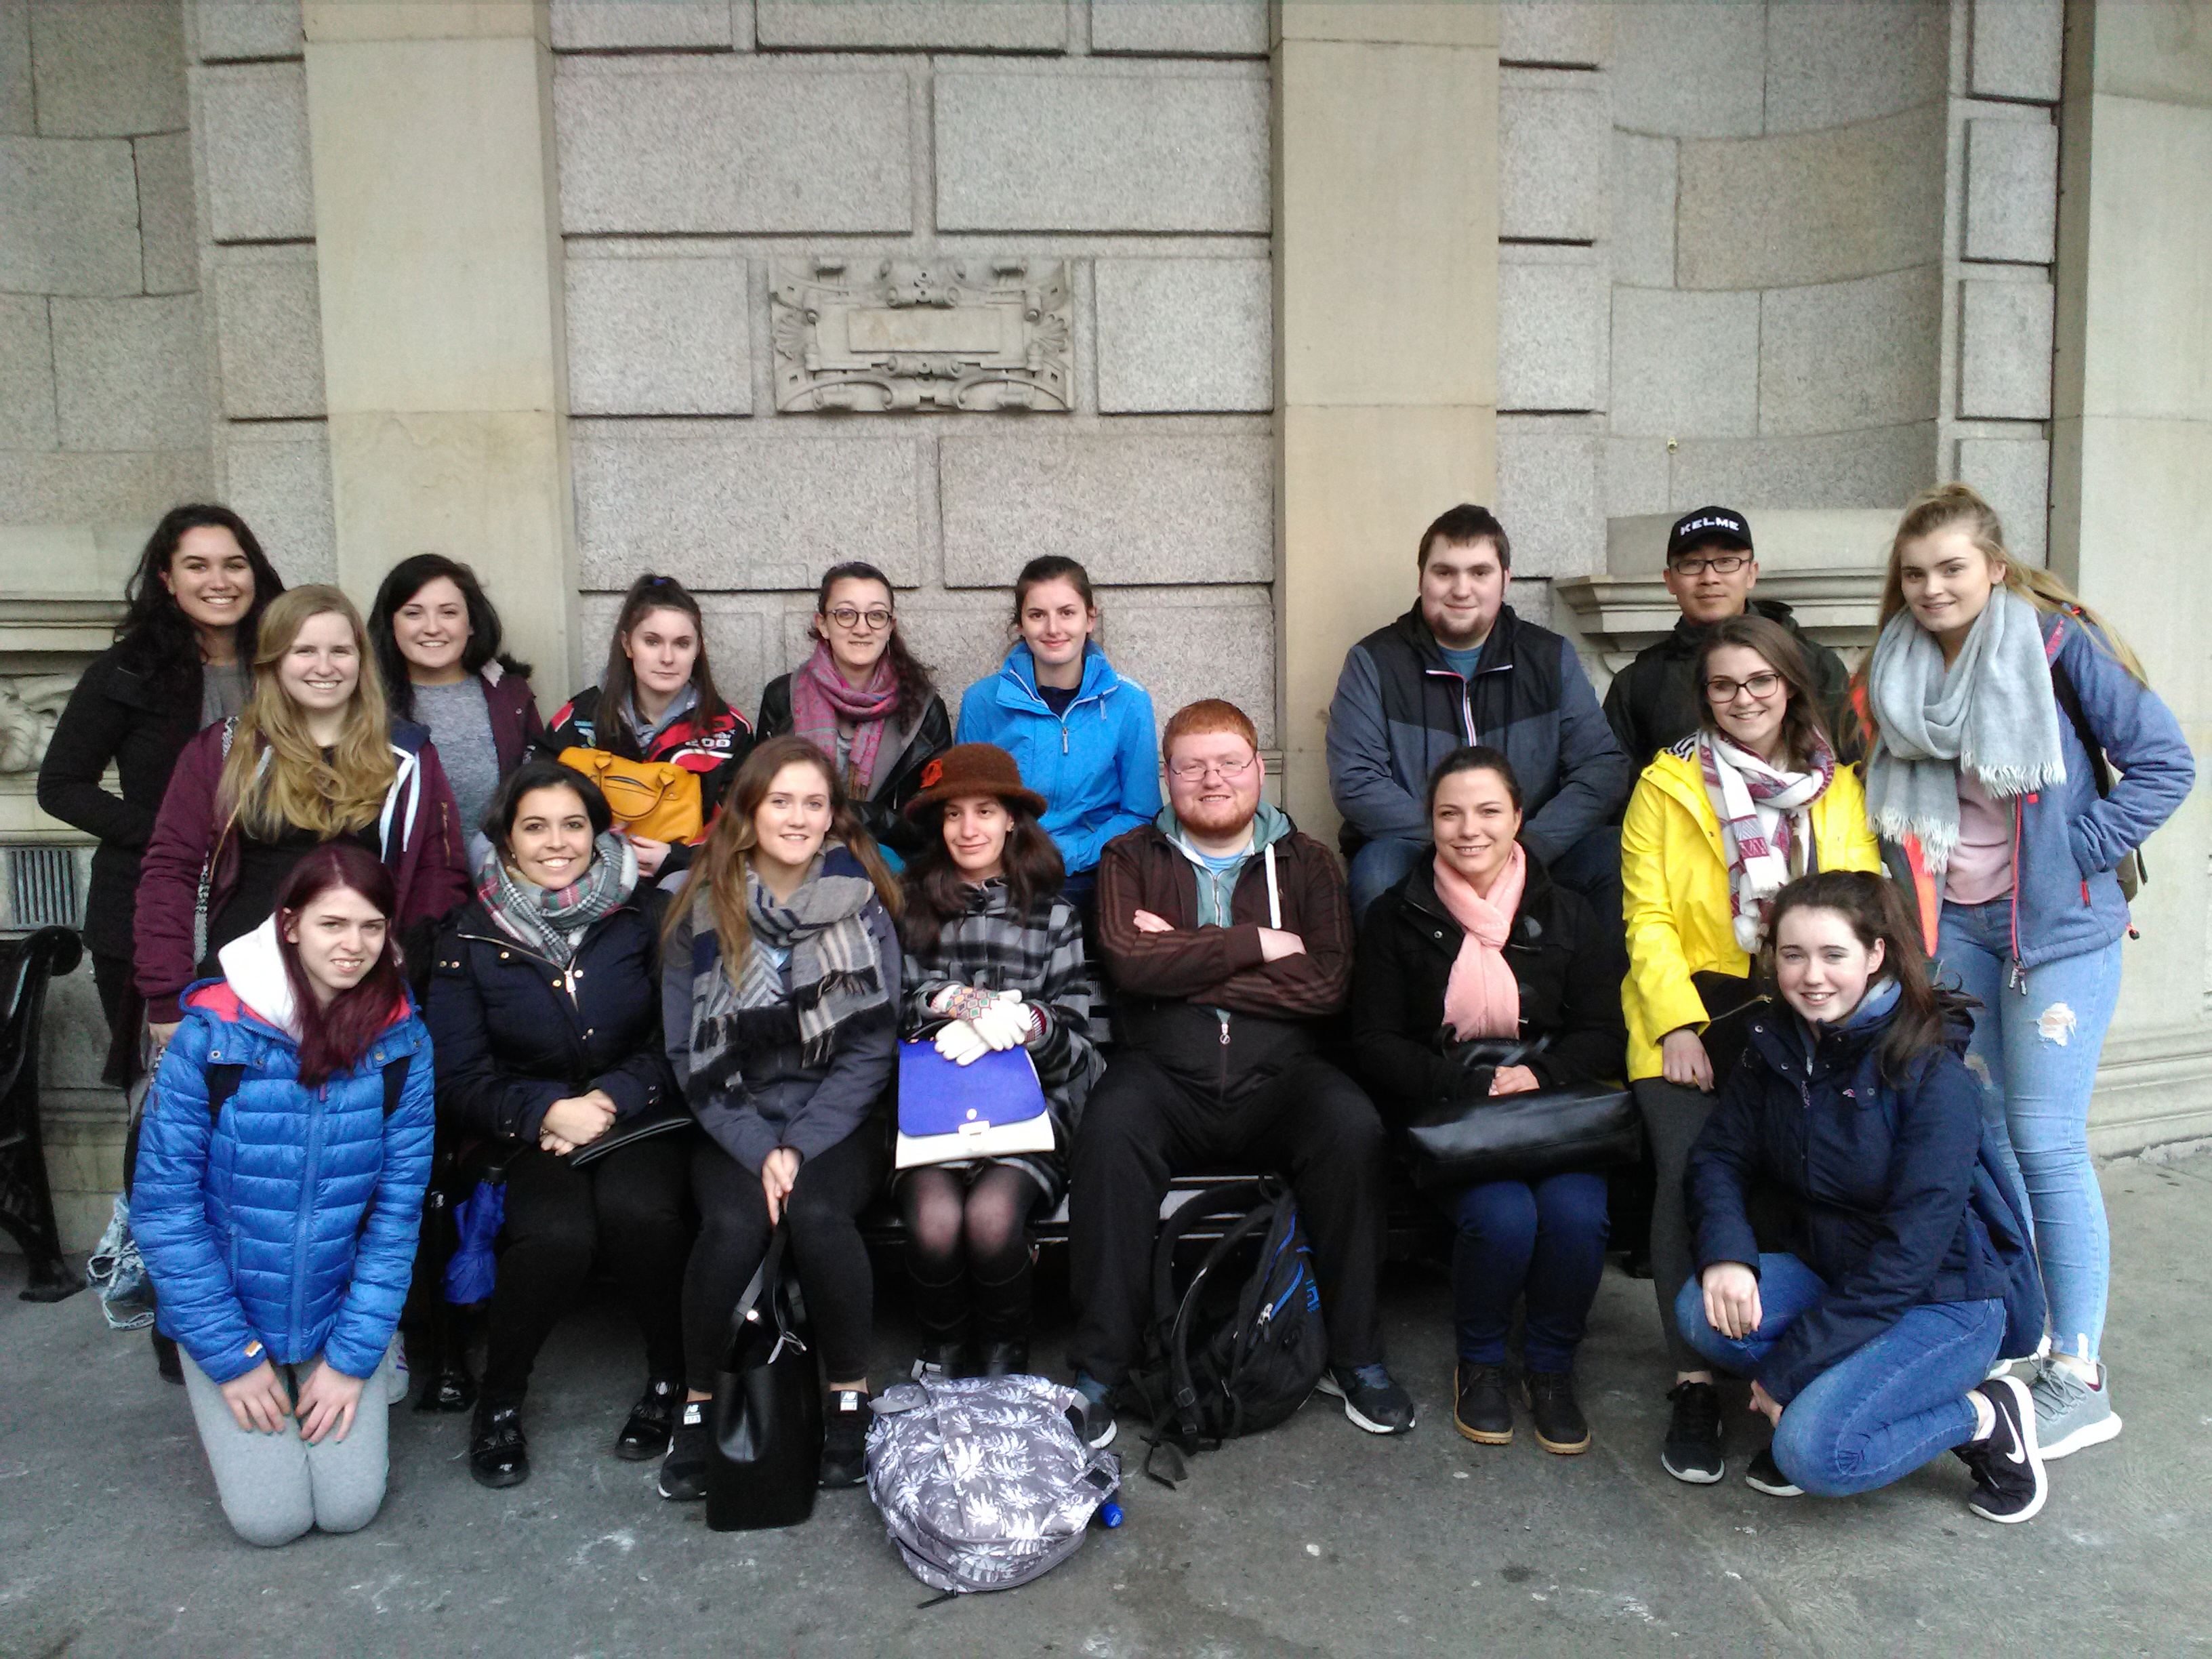 Tourism Students on field trip to Dublin